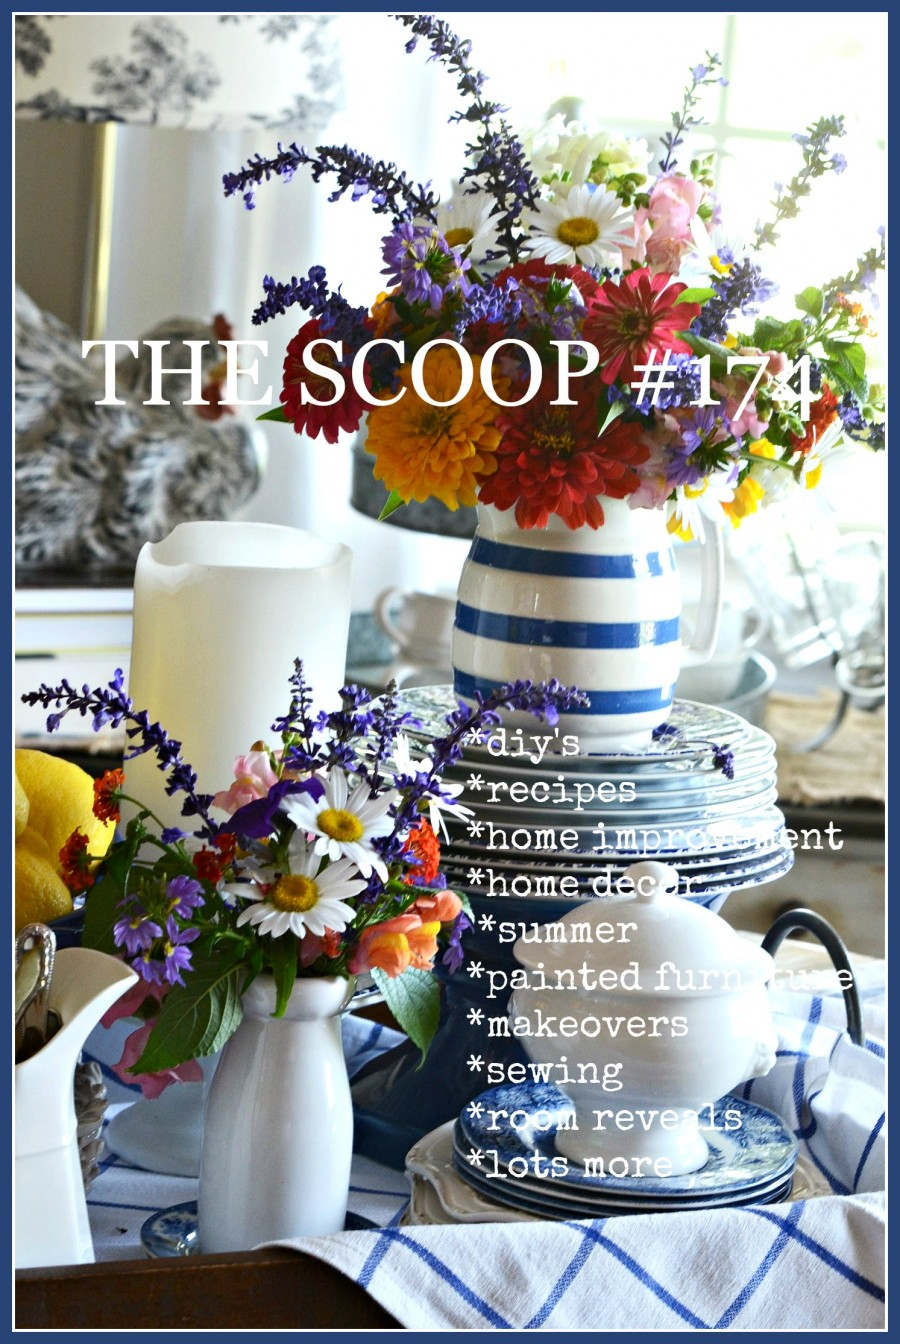 THE SCOOP-Hundreds of creative posts and lots of inspiration!-stonegableblog.com